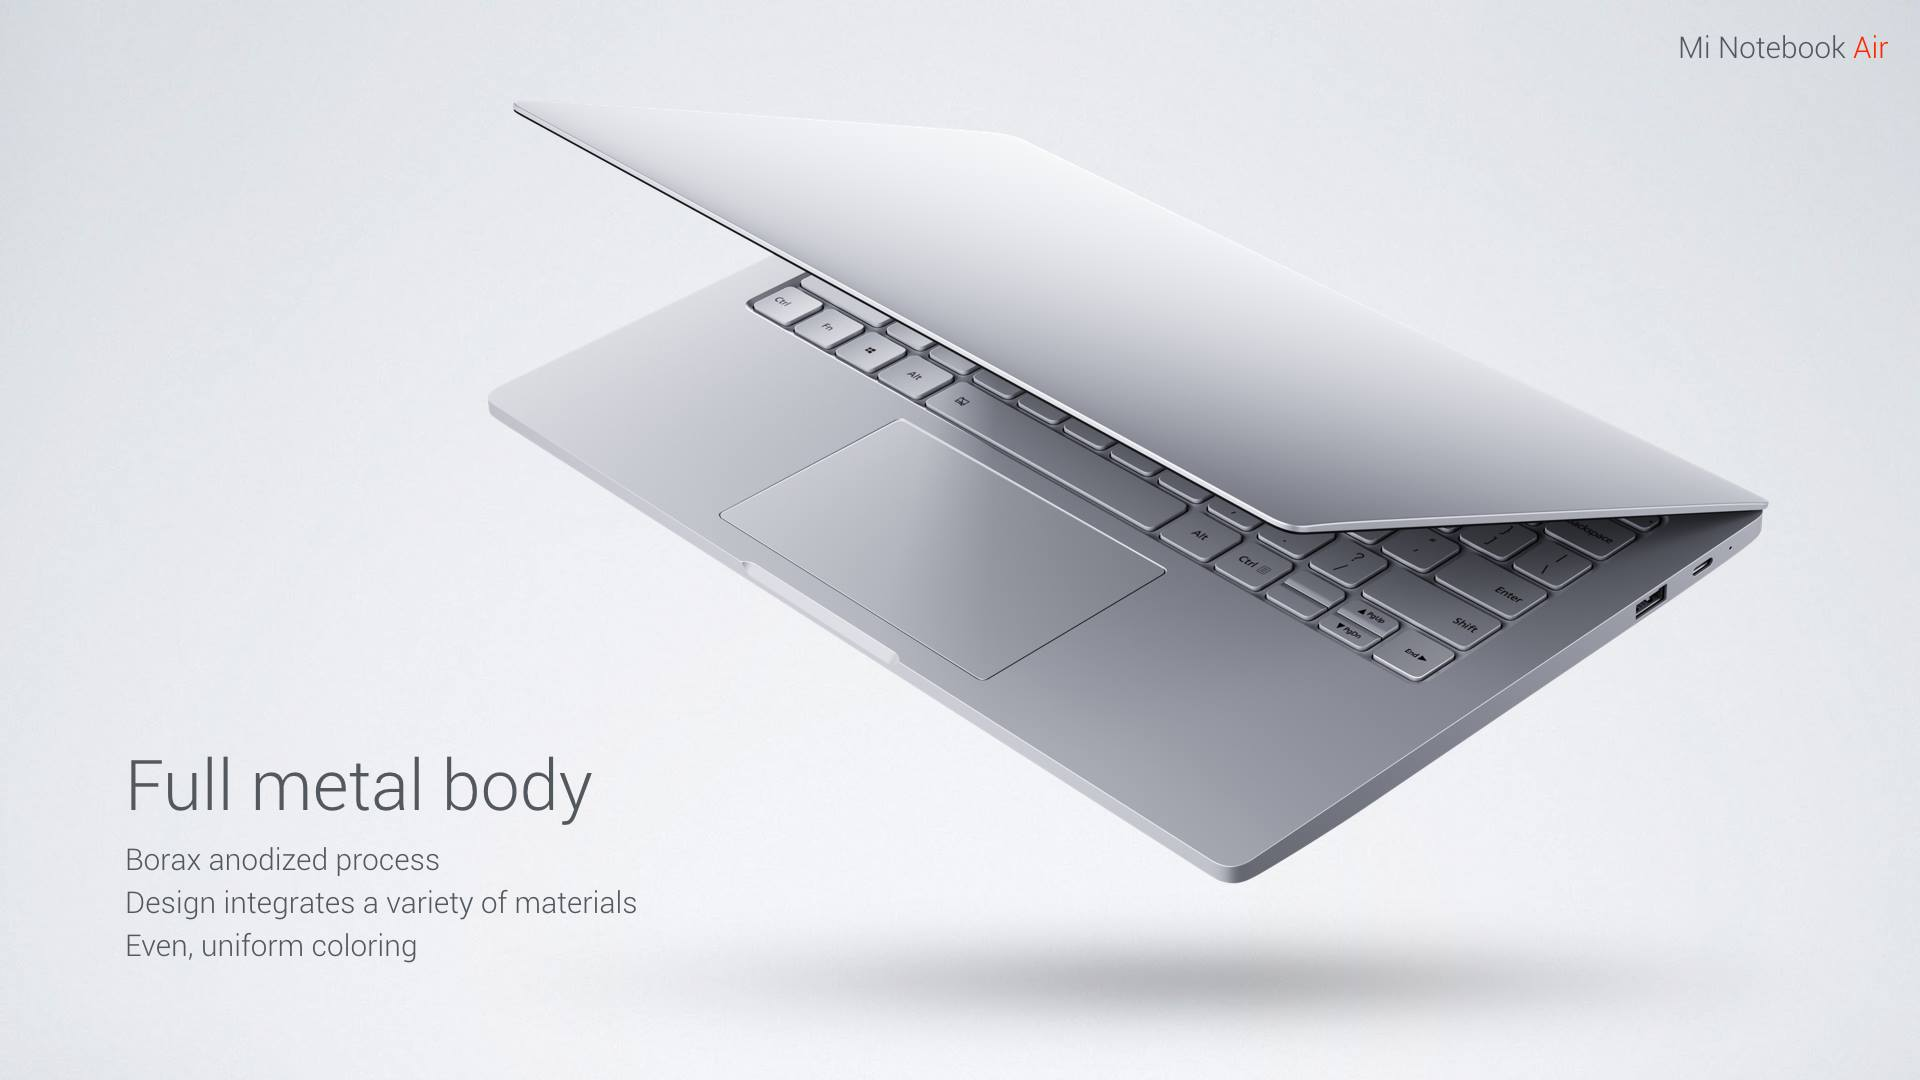 Mi Notebook Air Body